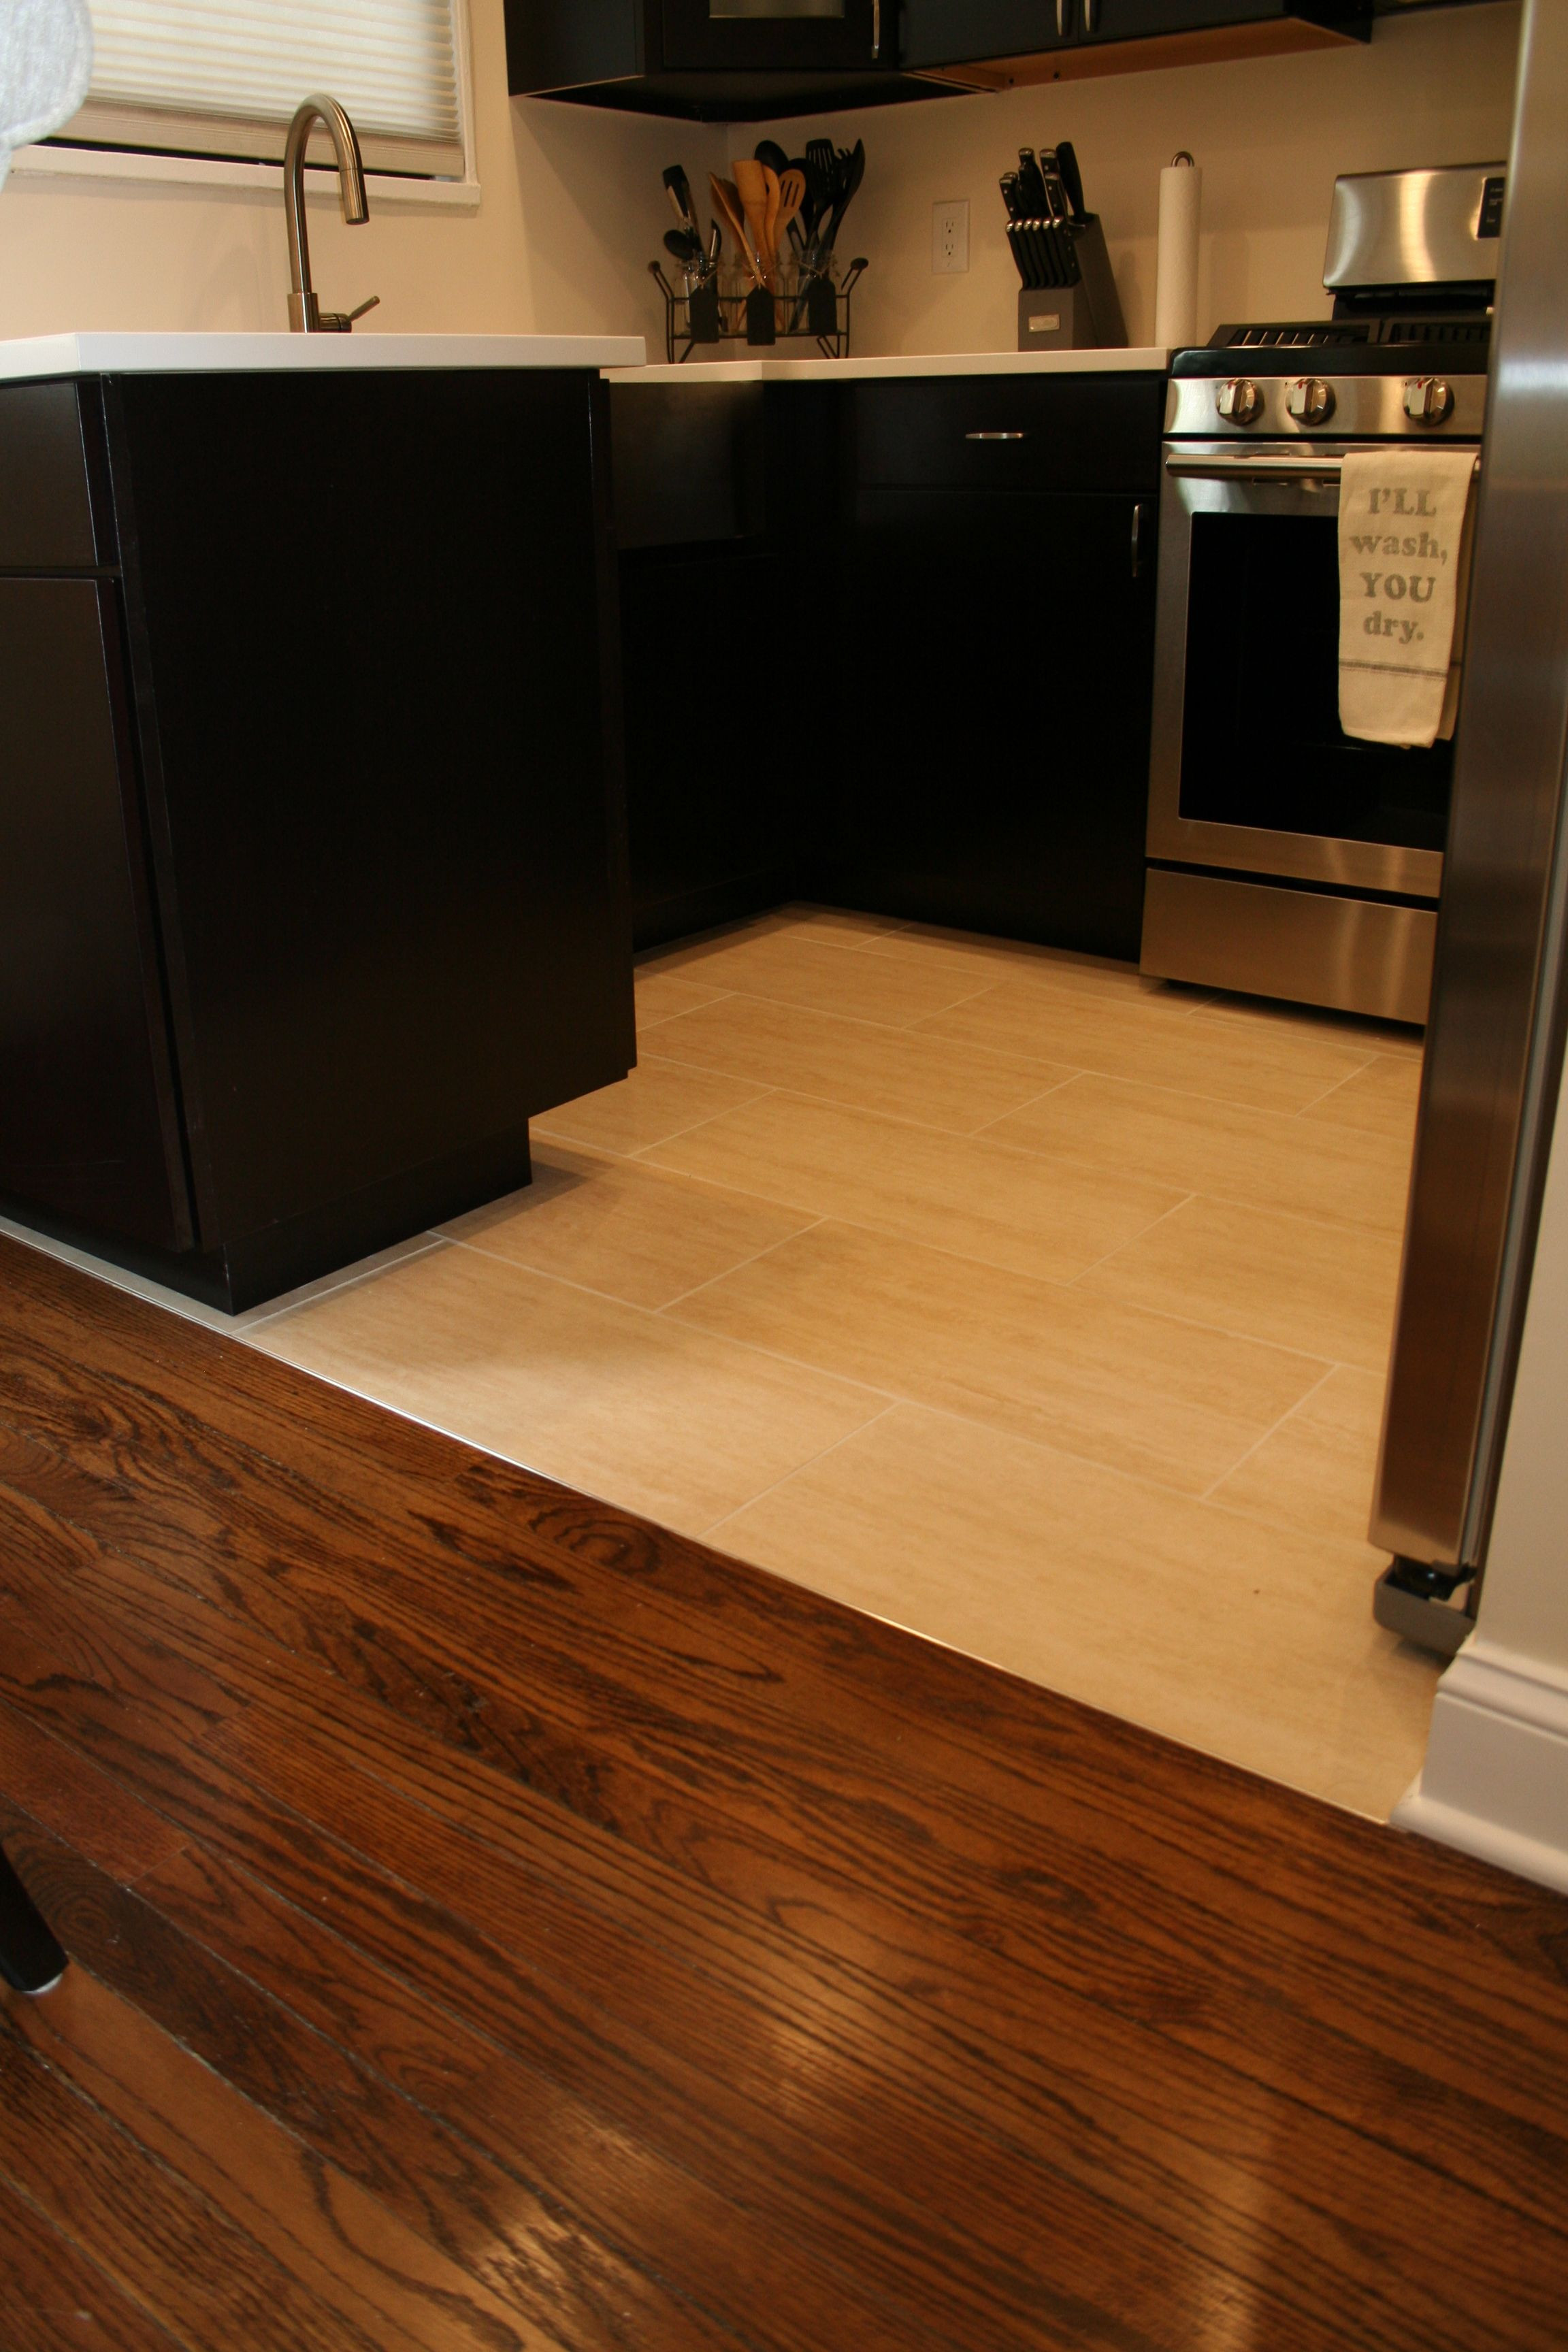 hardwood floor border patterns of pin by kabinet king on our work pinterest flooring tiles and with dark wood floors beautiful dark wood floors love the dark bamboo floors and pewter walls